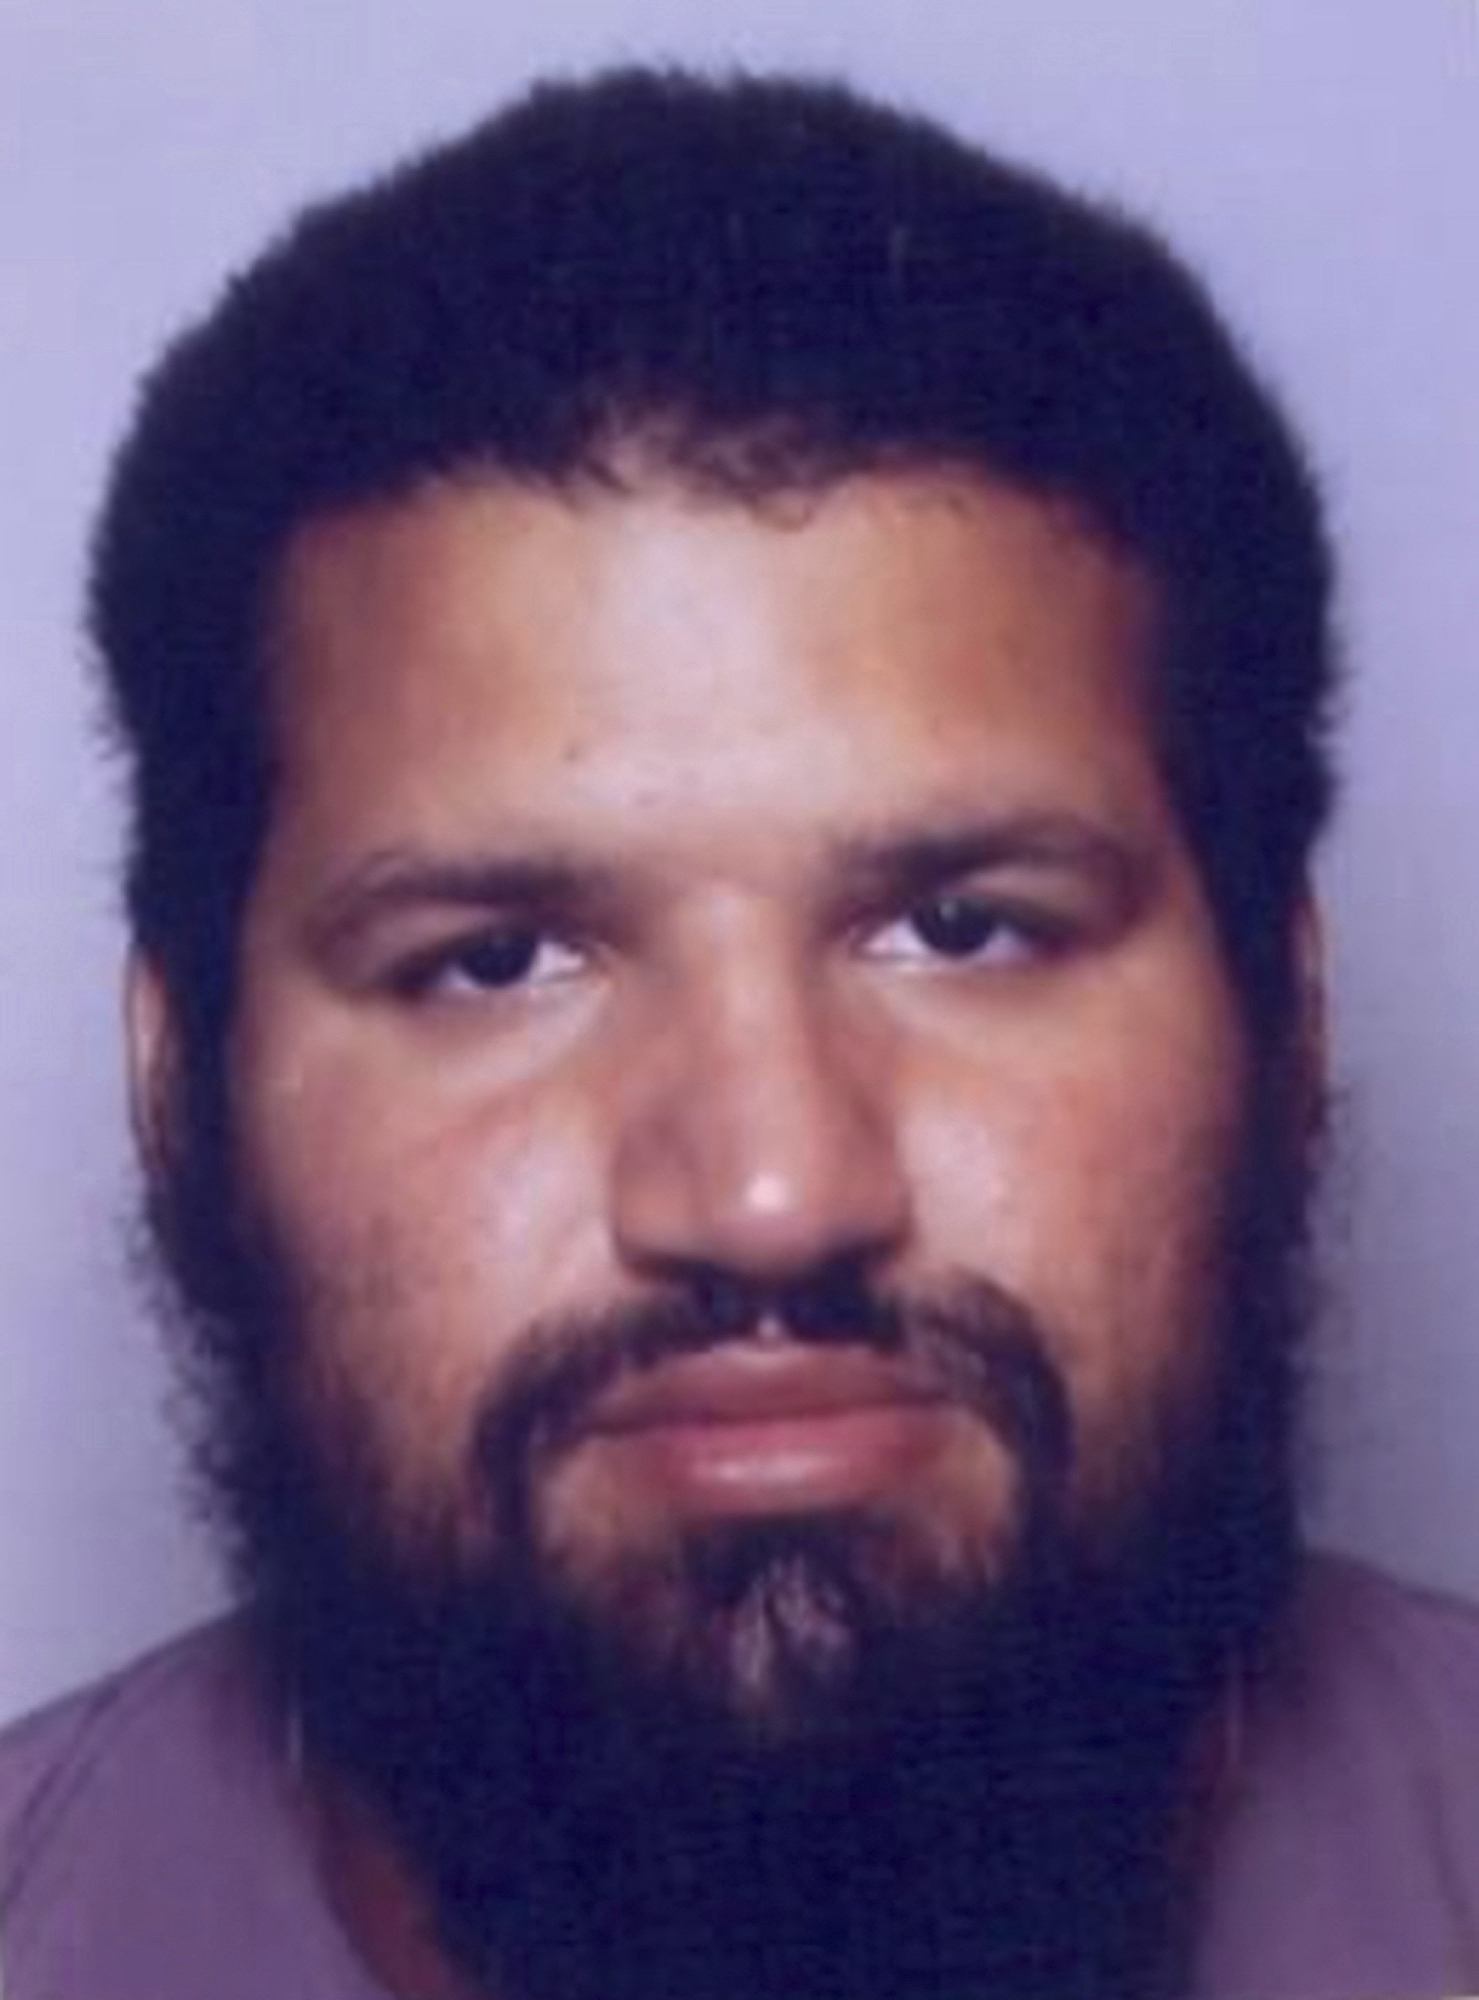 FILE - In this Thursday, Sept. 22, 2016, file picture, a screen grab from the Interpol wanted persons web page shows a portrait for Fabien Clain. French jihadist Fabien Clain known as the